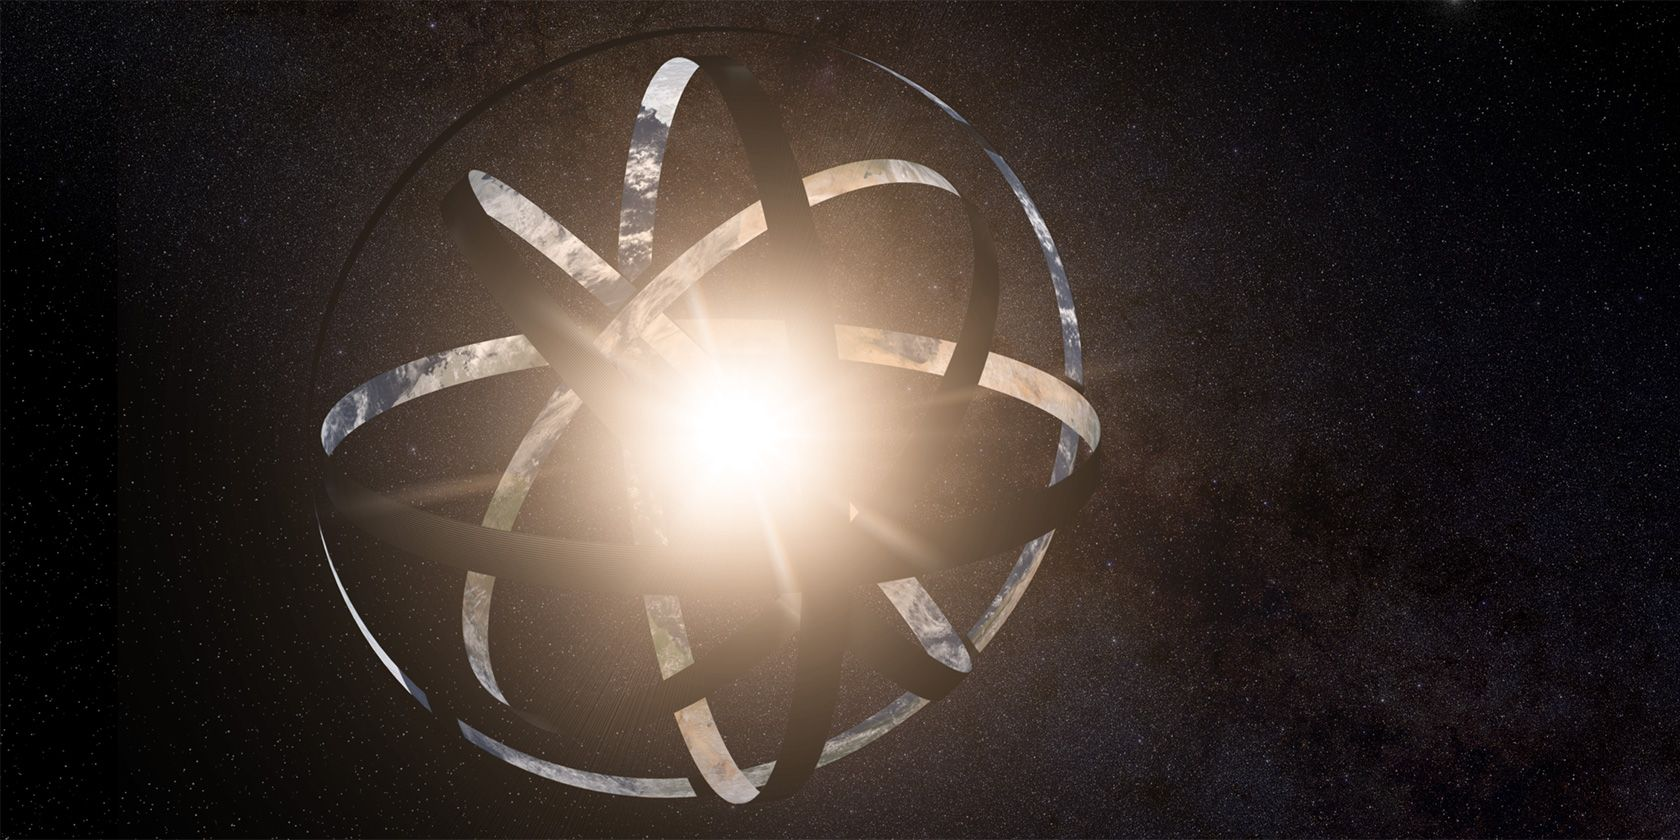 What Is a Dyson Sphere and Can We Ever Build One?